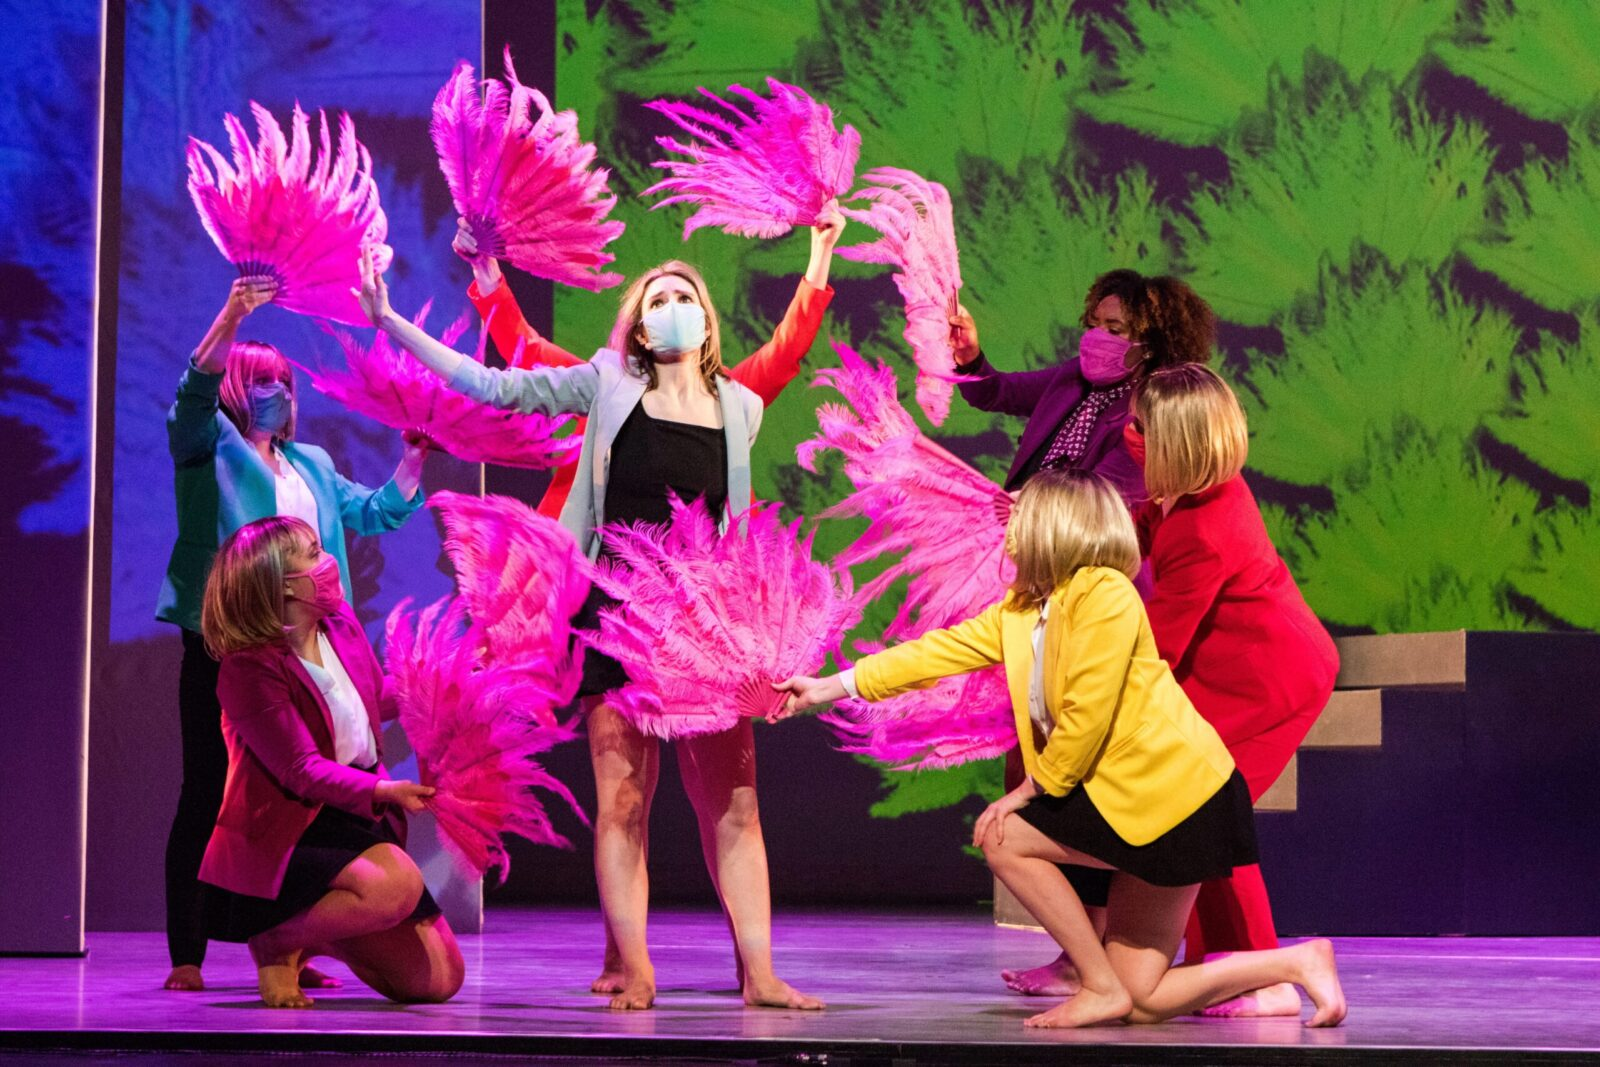 A group of dancers holding pink feathered fans surround a soloist